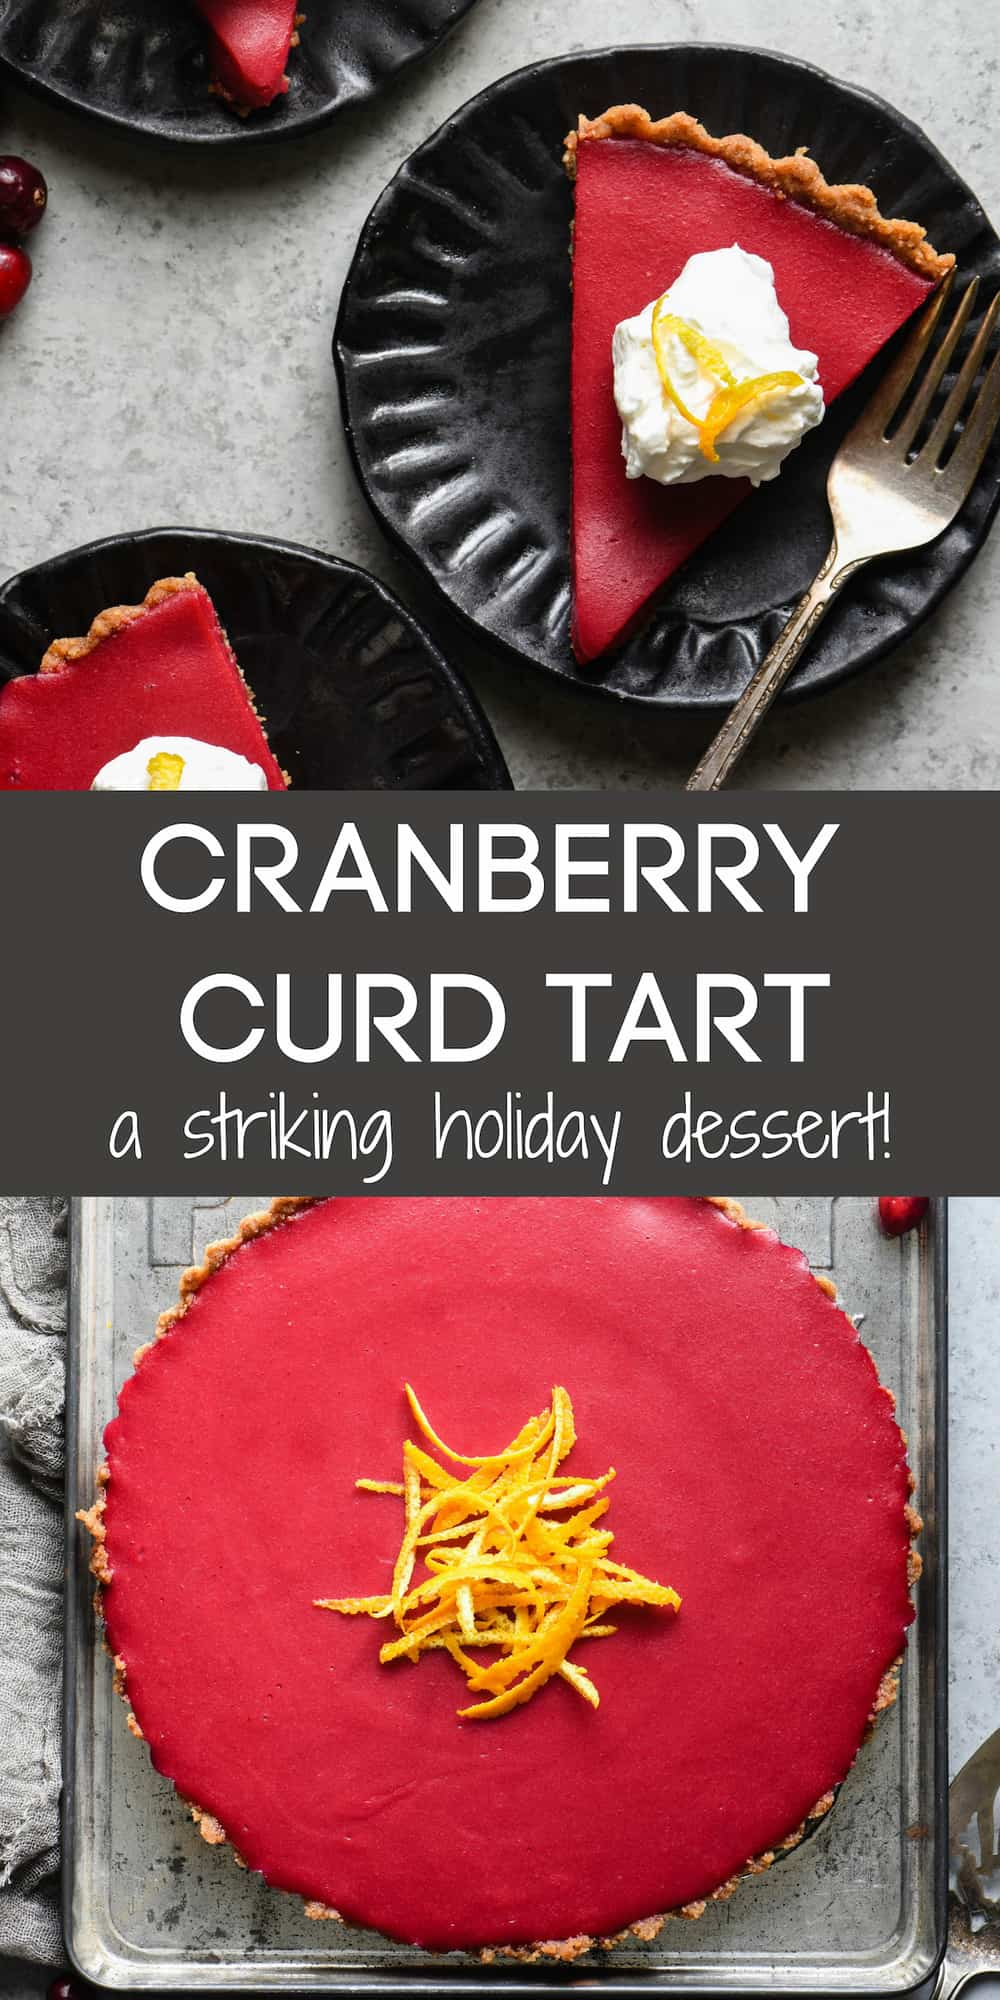 Collage of images of whole tart and cut slices, with overlay: CRANBERRY CURD TART a striking holiday dessert!